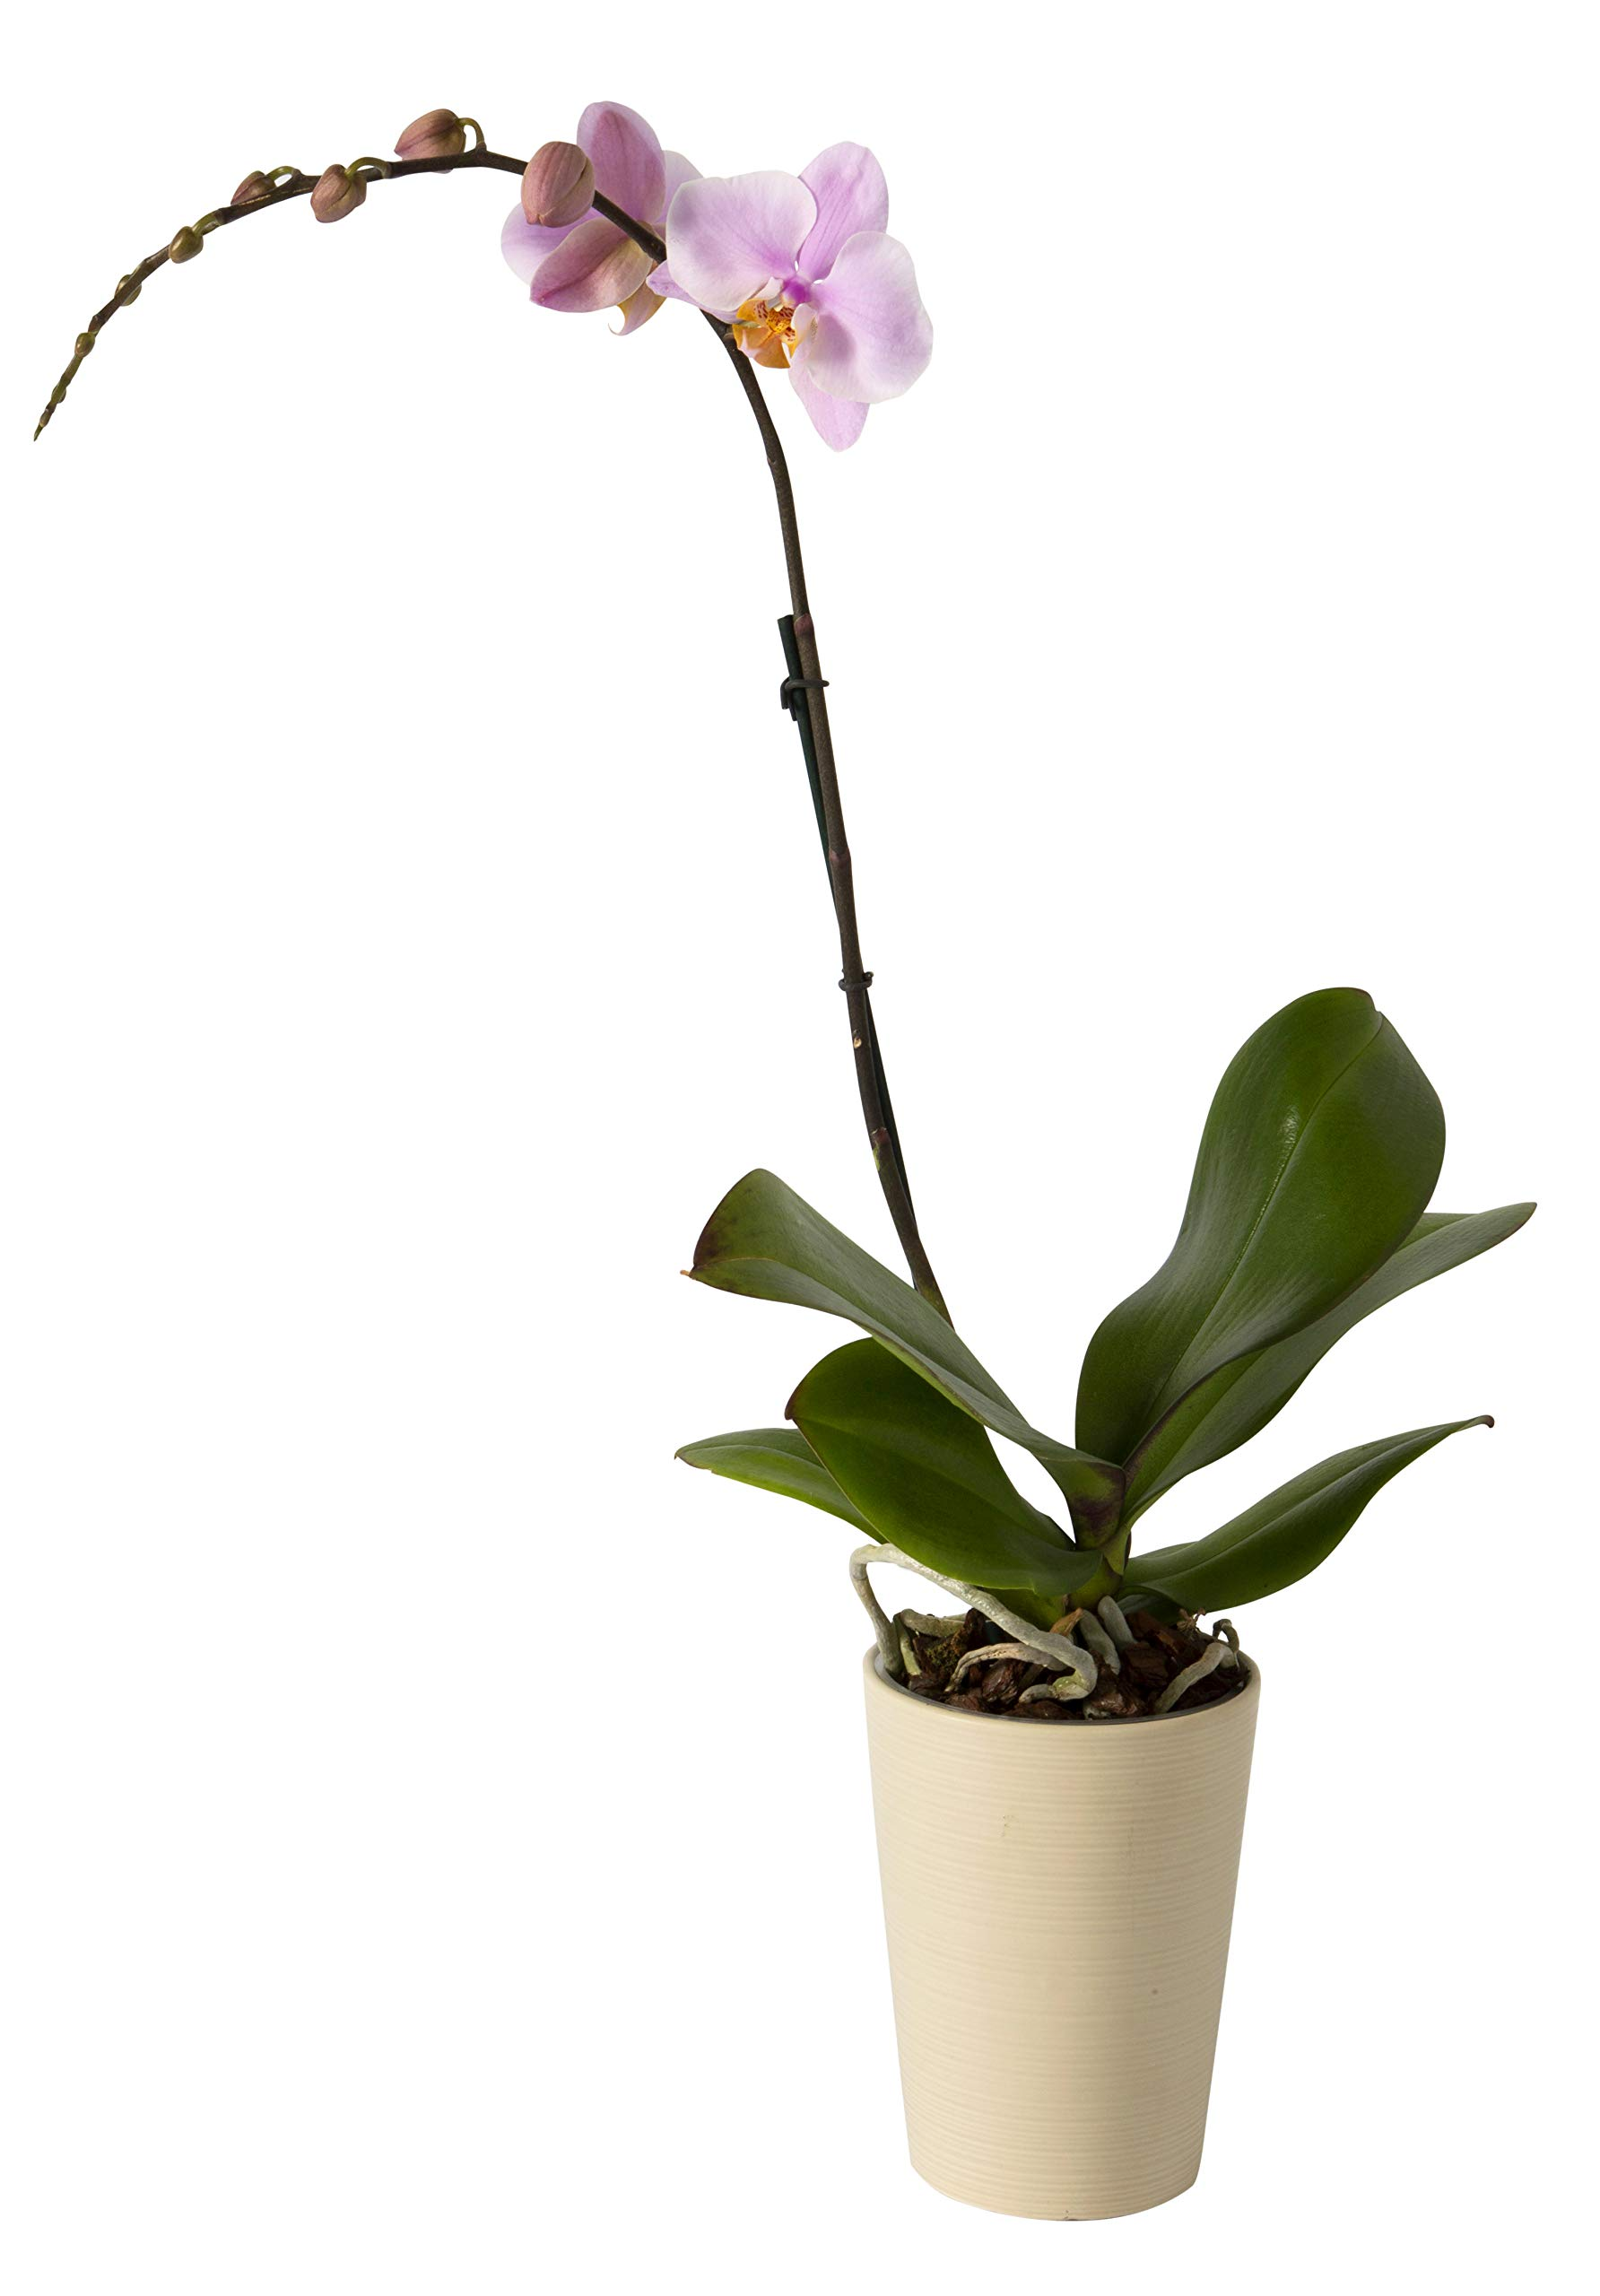 Color Orchids Live Blooming Single Stem Phalaenopsis Orchid Plant in Ceramic Pot, 20''-24'' Tall, Pink Blooms